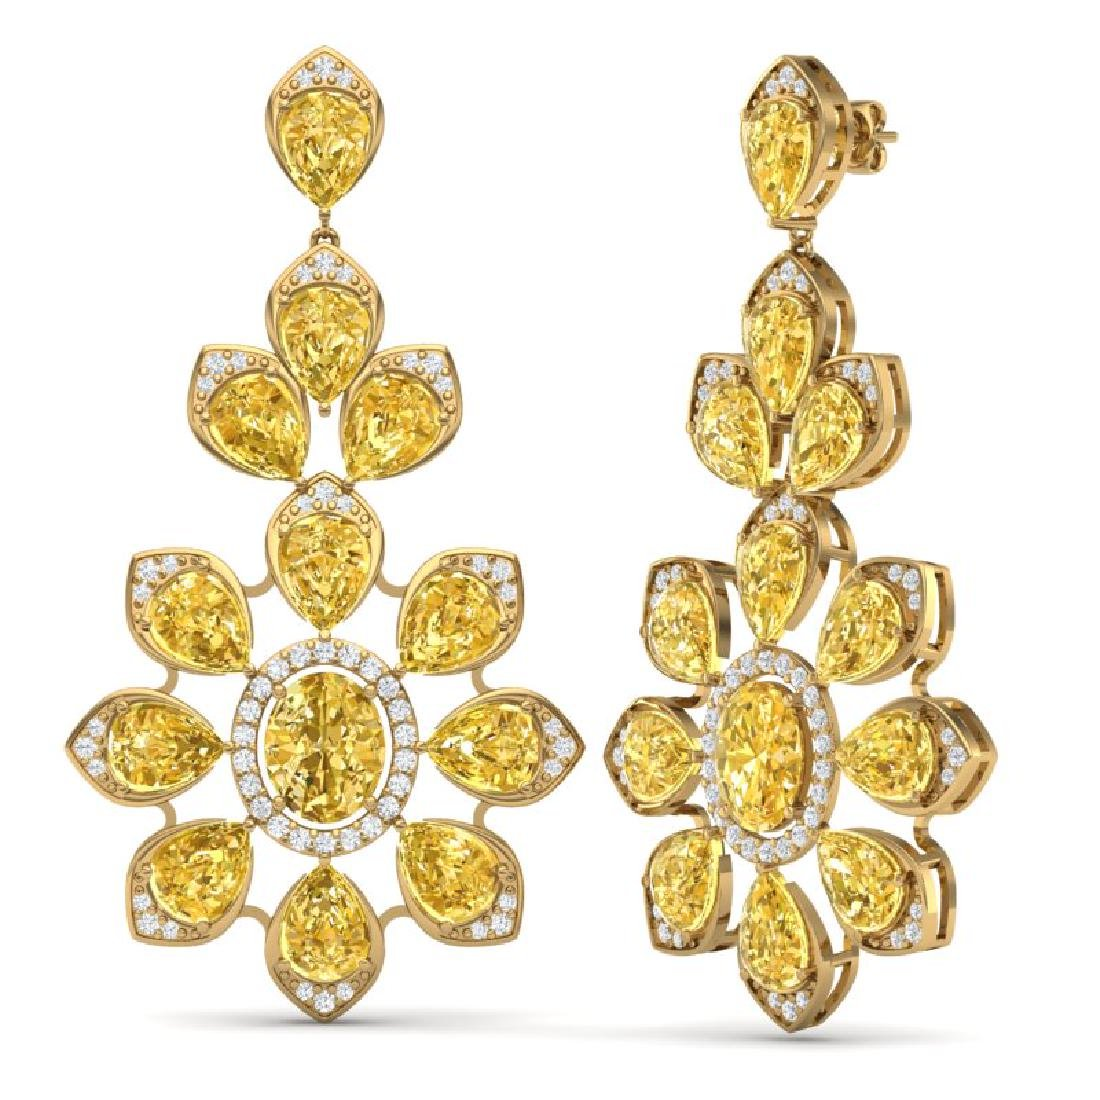 48.67 CTW Royalty Canary Citrine & VS Diamond Earrings - 3